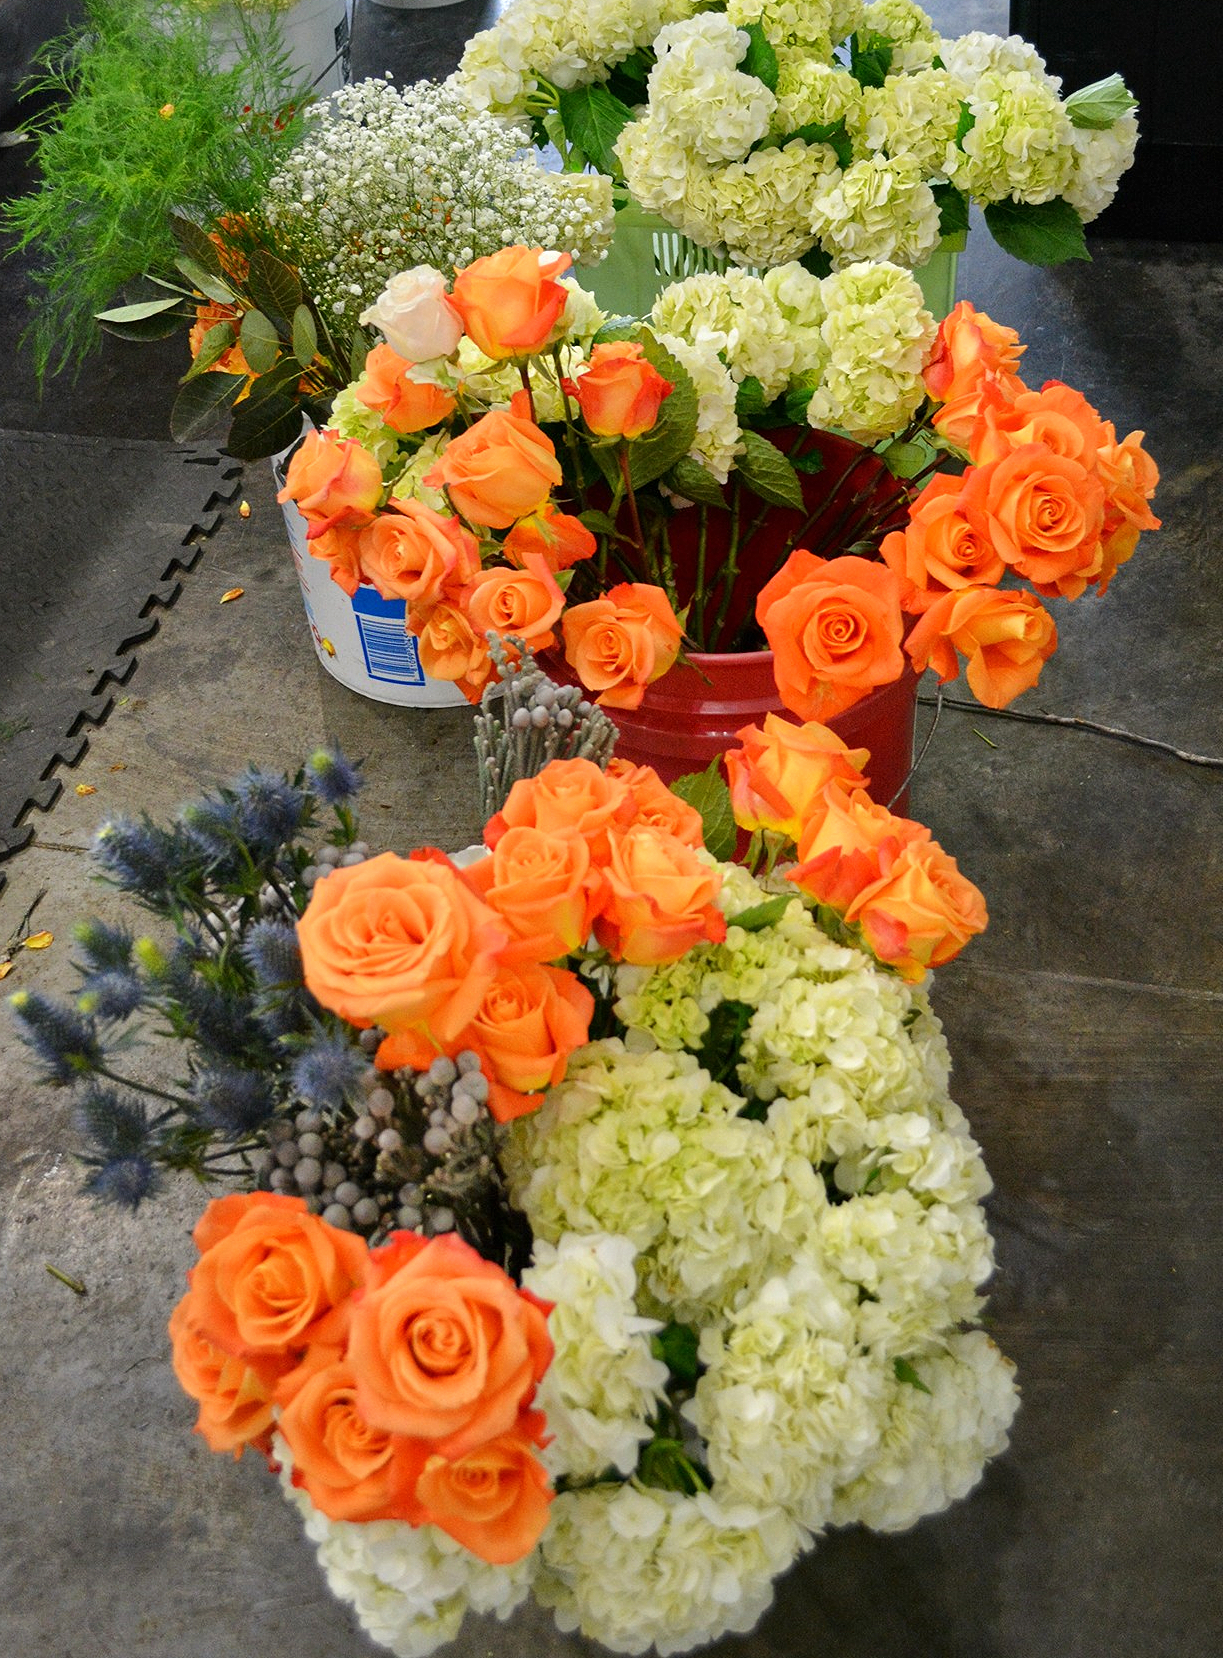 Buckets of lush hydrangeas, tangerine orange roses, thistle, berries, orchids and more